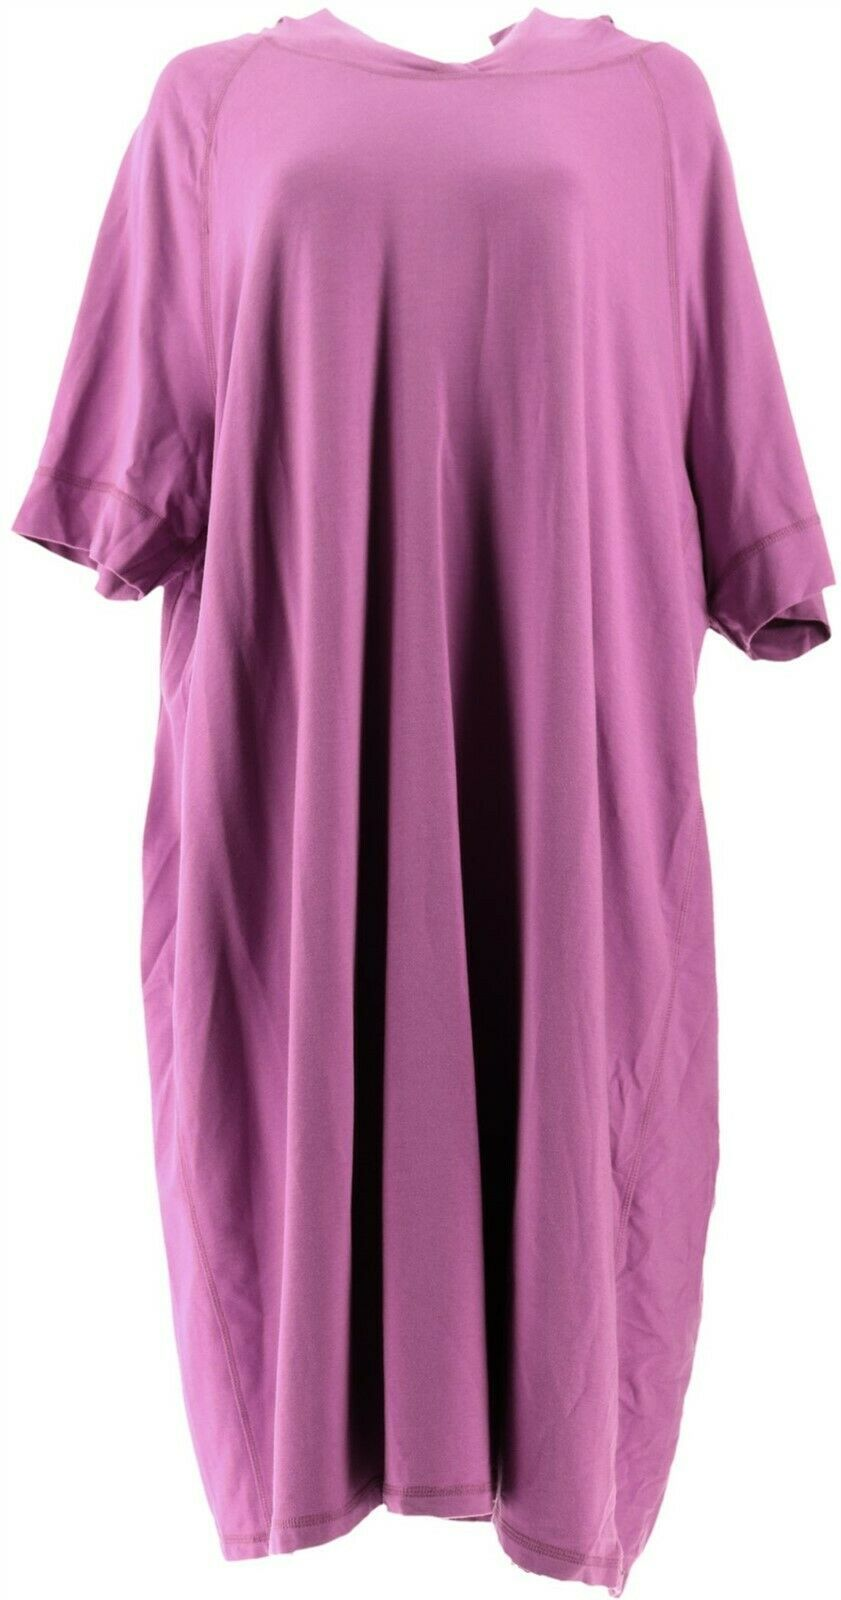 Primary image for Isaac Mizrahi SOHO Elbow Slv Sweatshirt Dress Hood Orchid Bloom 1X NEW A307994